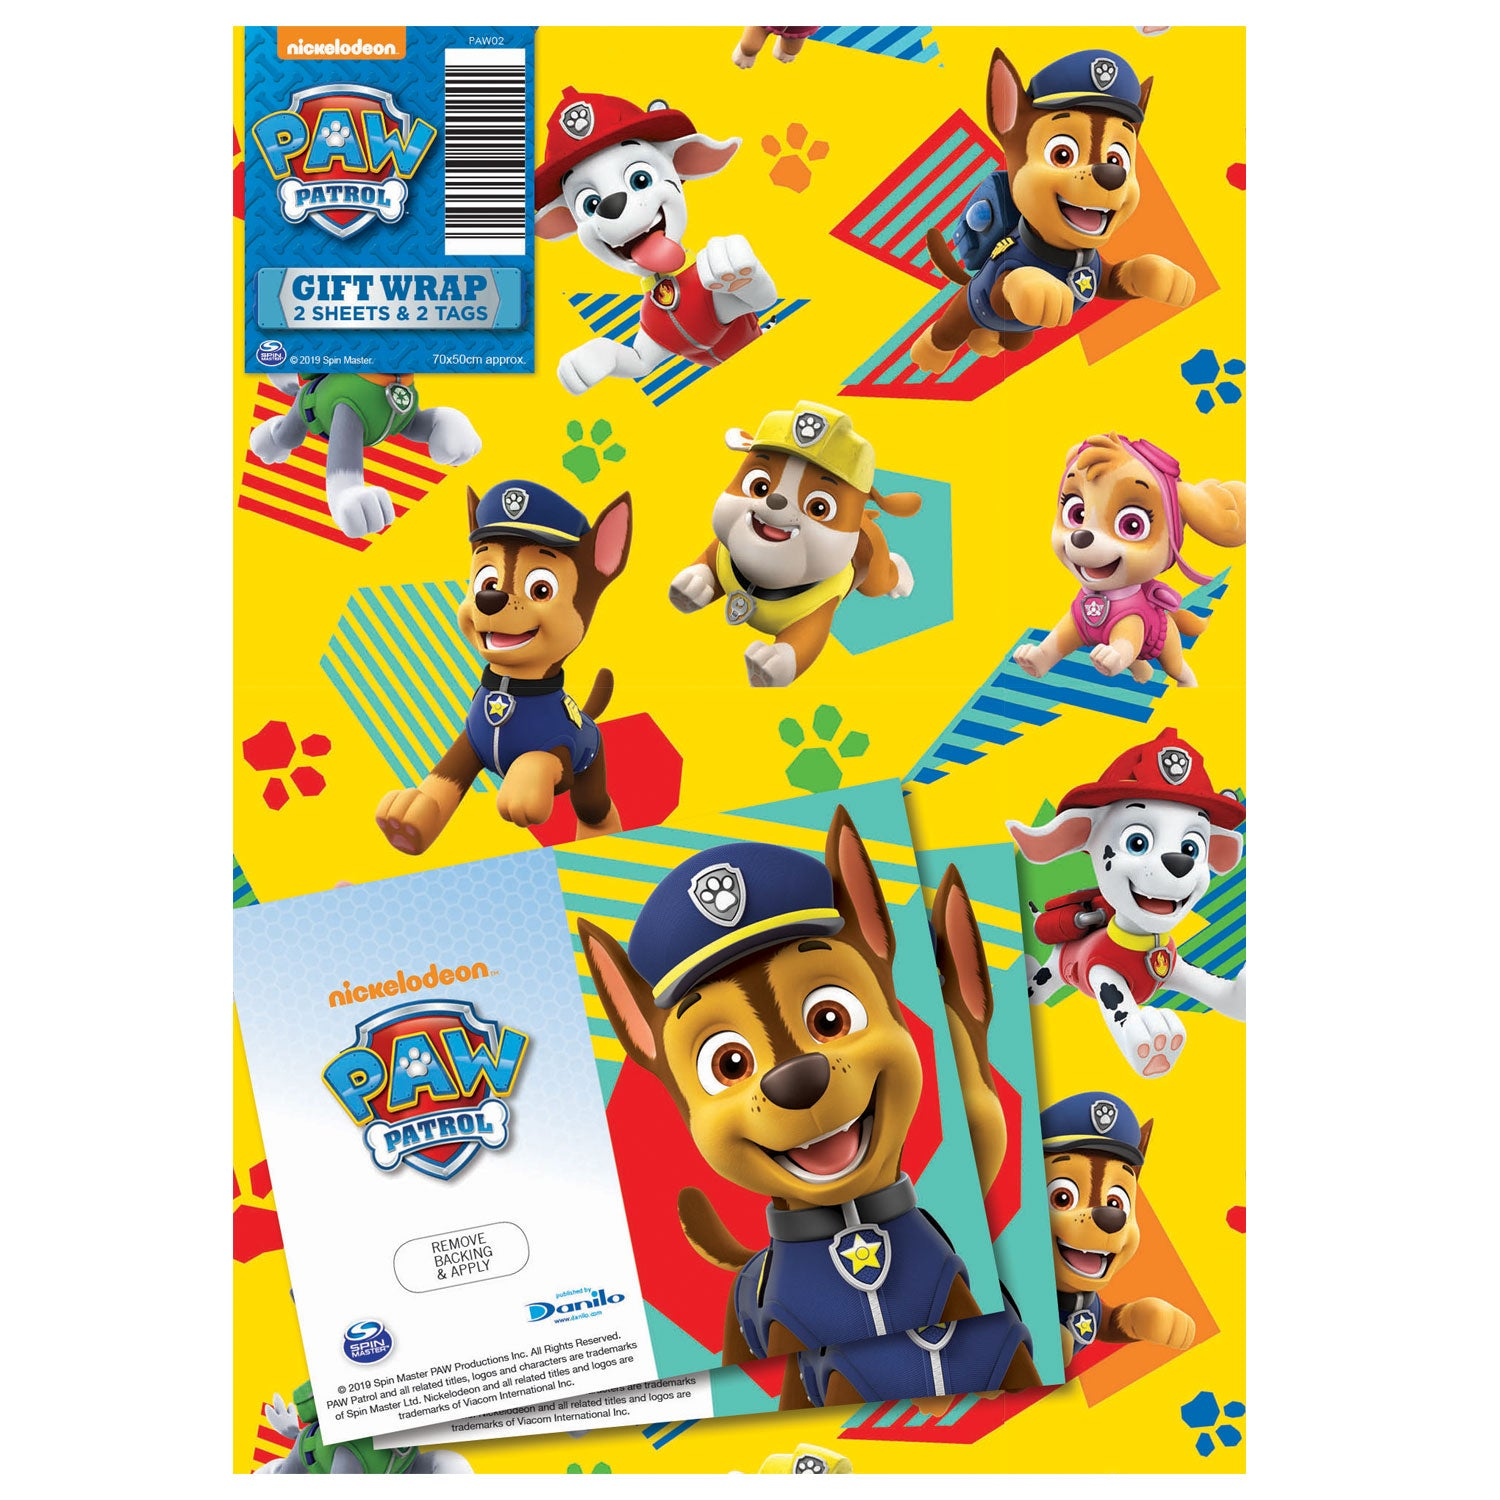 Paw Patrol Gift Wrap 2 Sheets and Tags